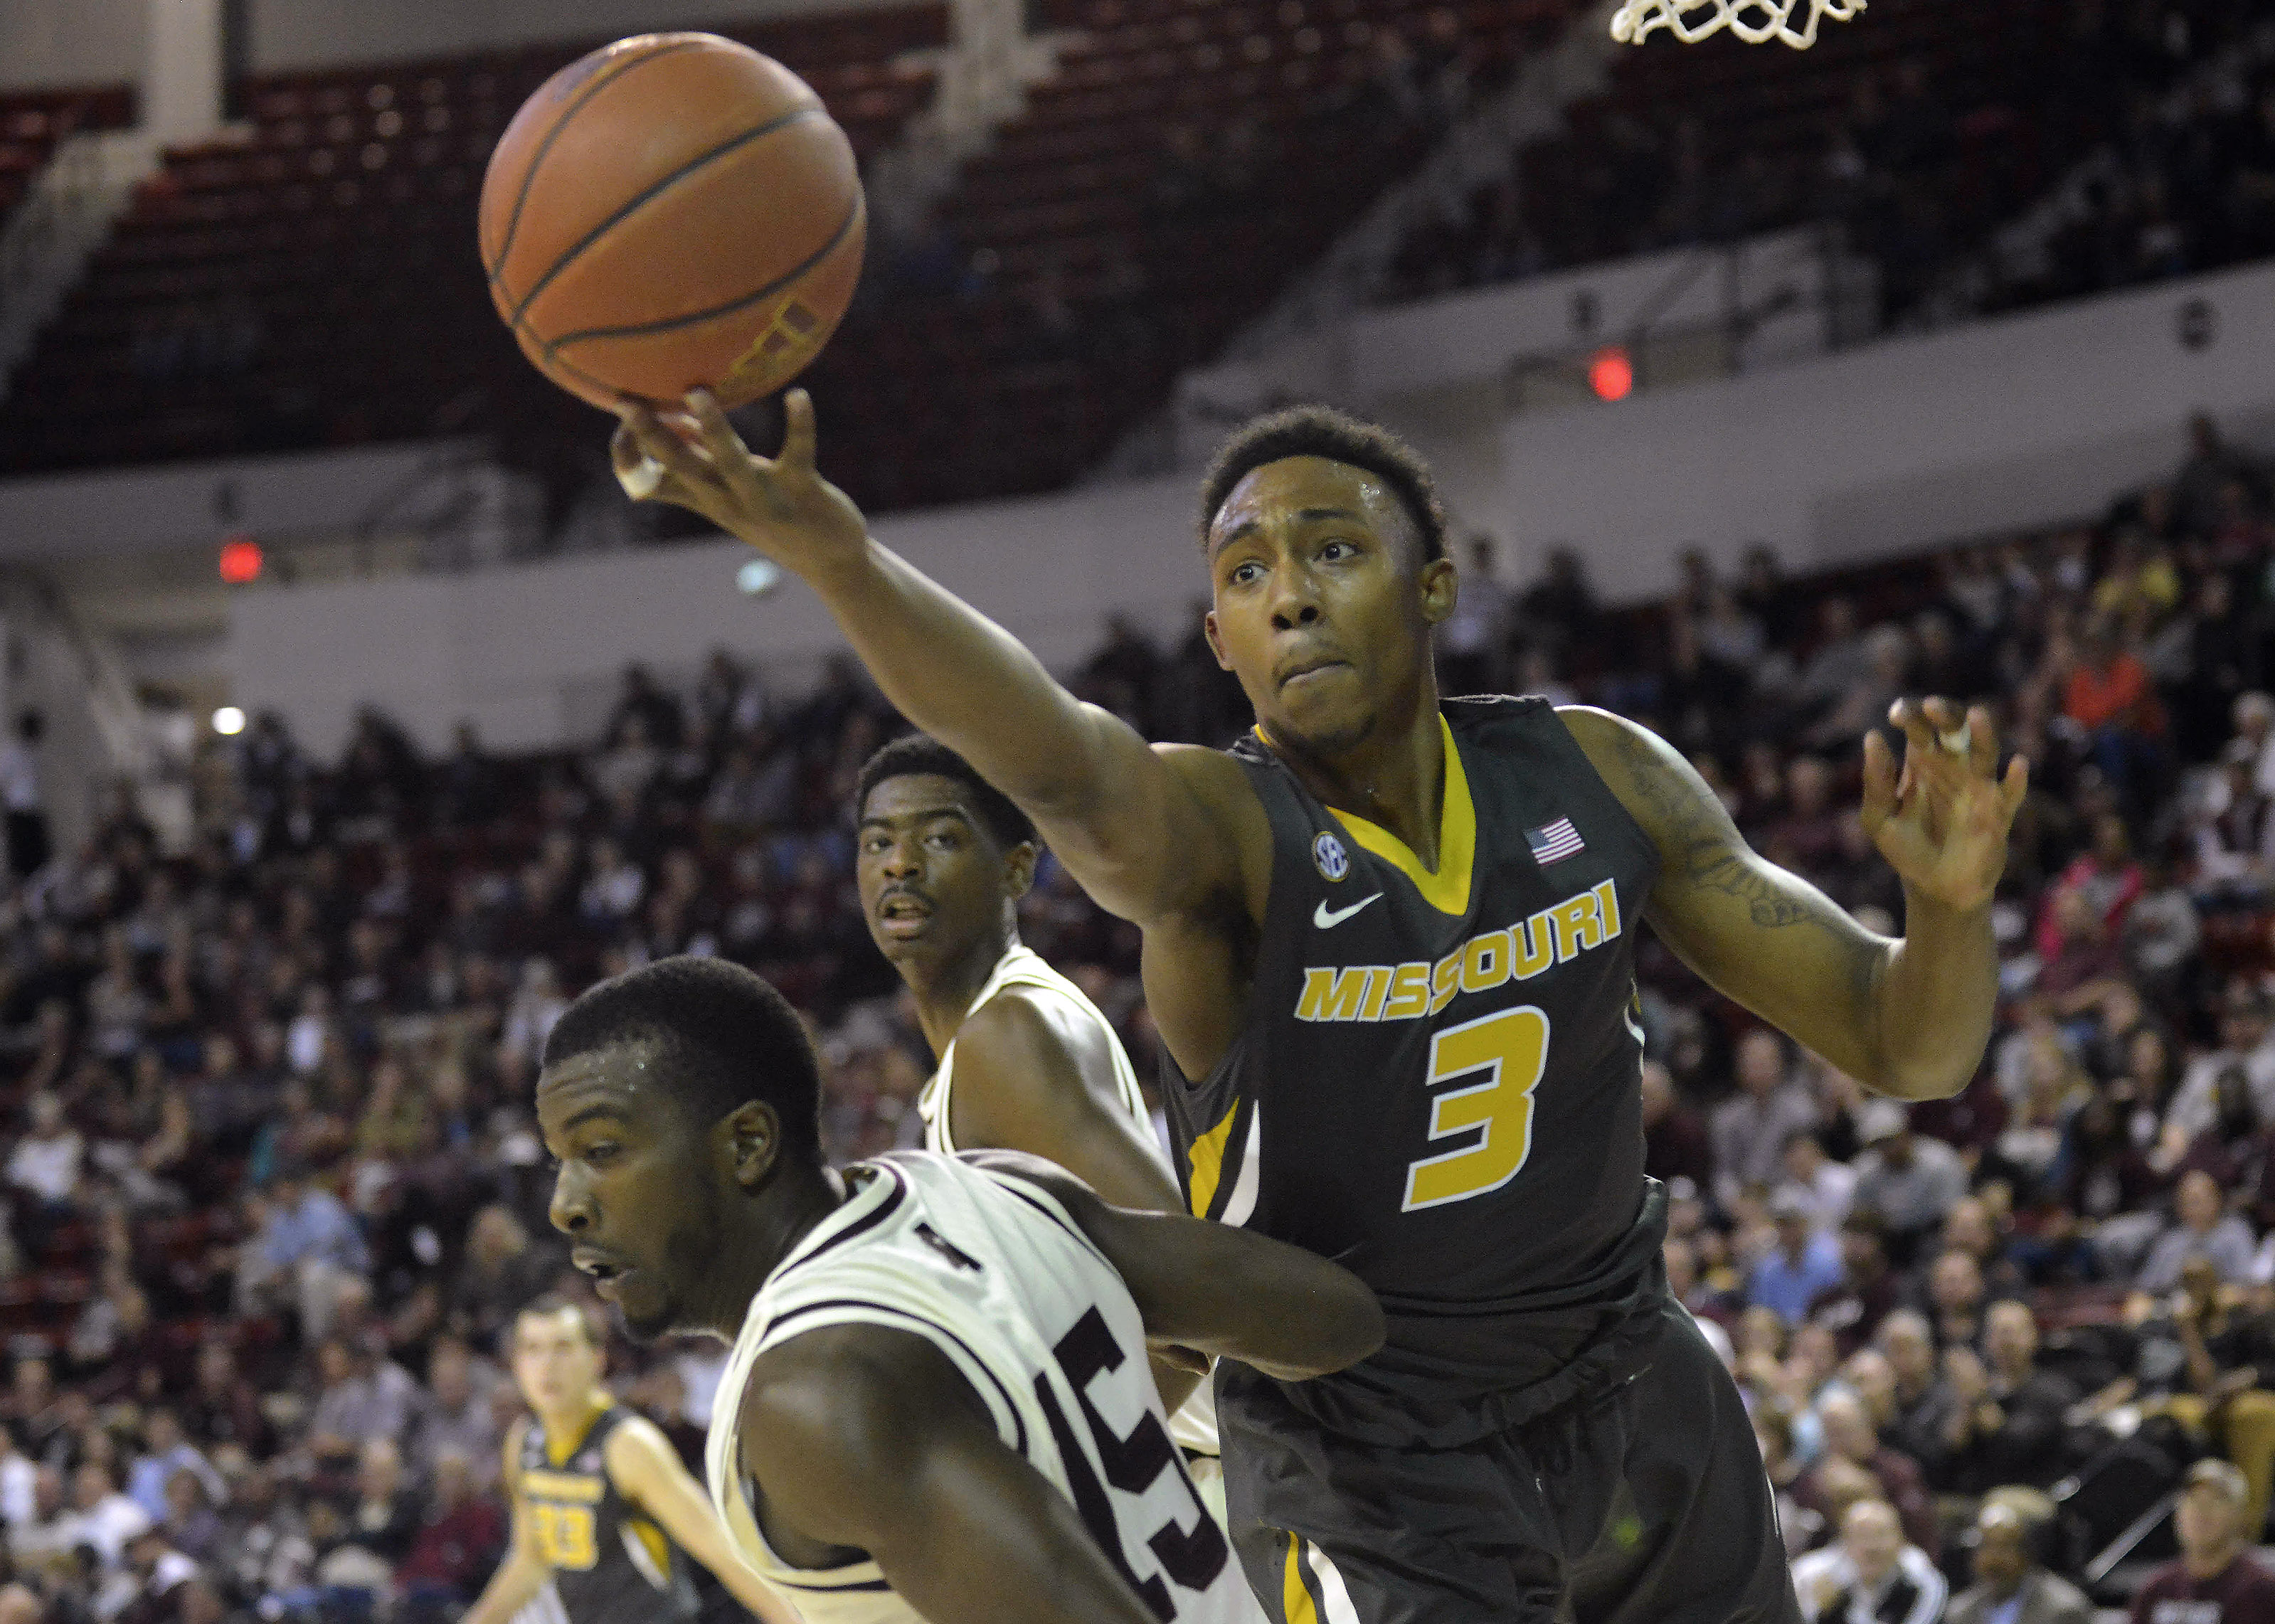 9837407-ncaa-basketball-missouri-at-mississippi-state